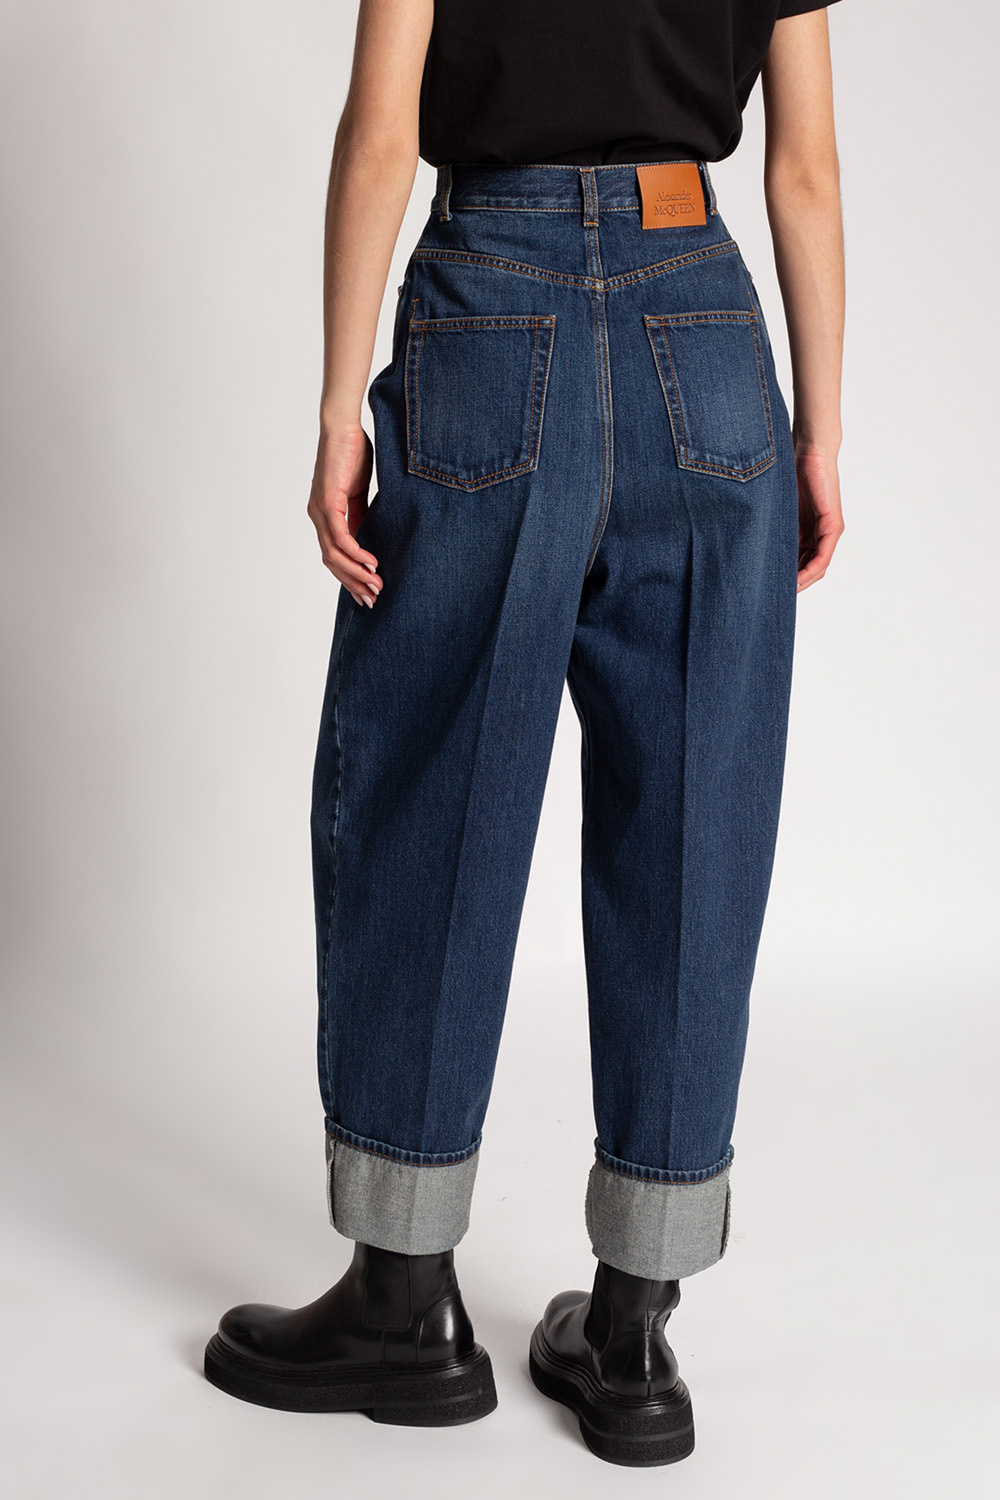 Alexander McQueen Jeans with turn up cuffs